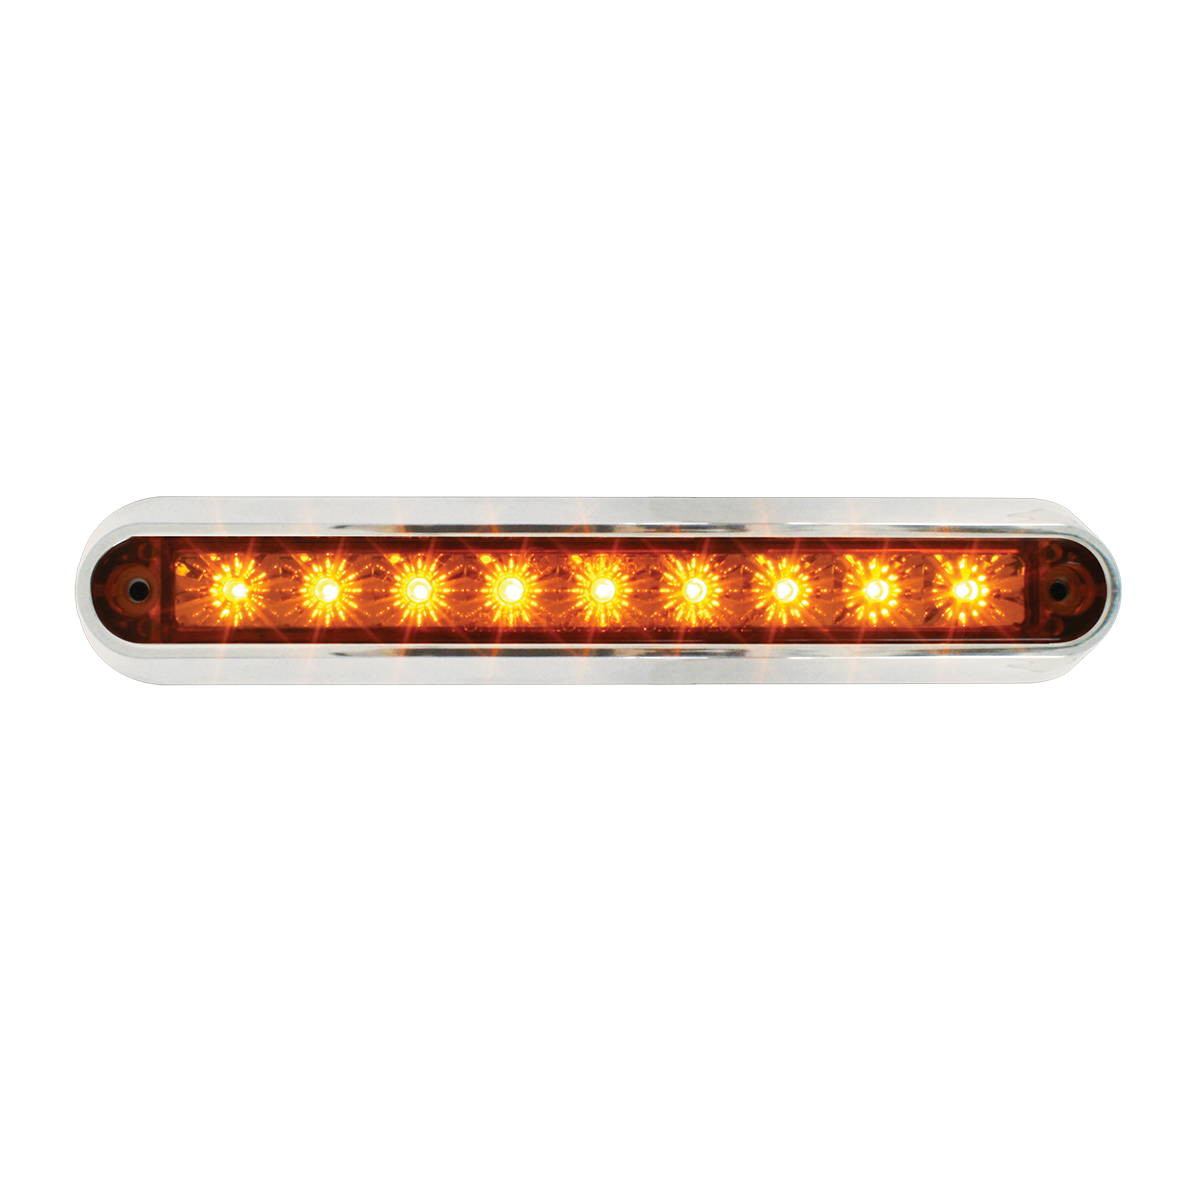 "76090 6.5"" Surface Mount LED Light Bar w/ Chrome Plastic Base"